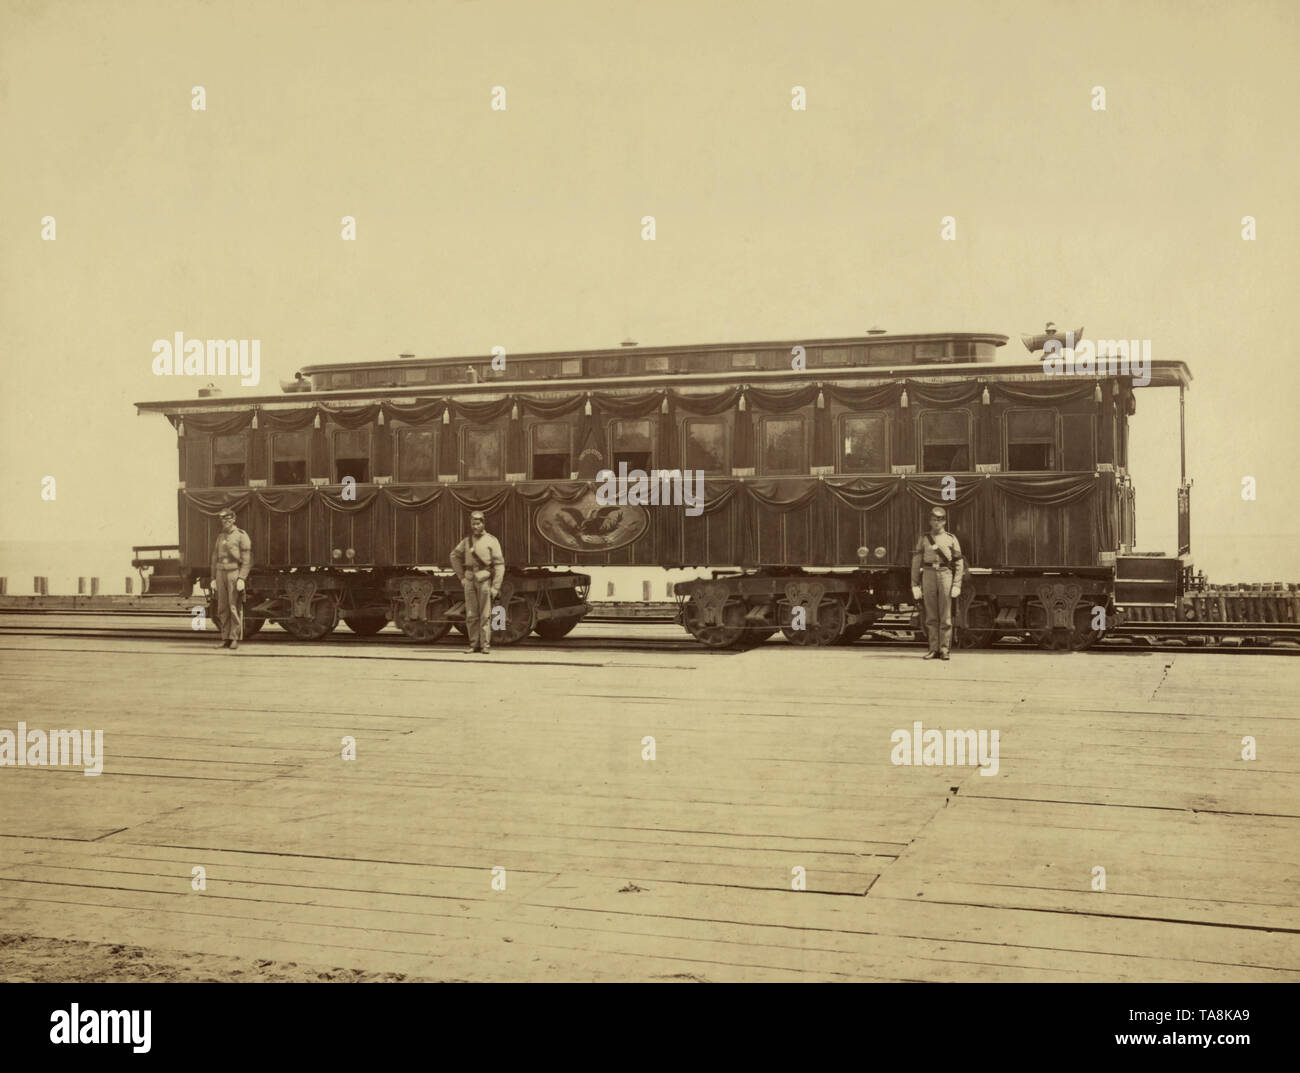 Abraham Lincoln's Railroad Funeral Car, Photograph by Samuel Montague Fassett, 1865 Stock Photo